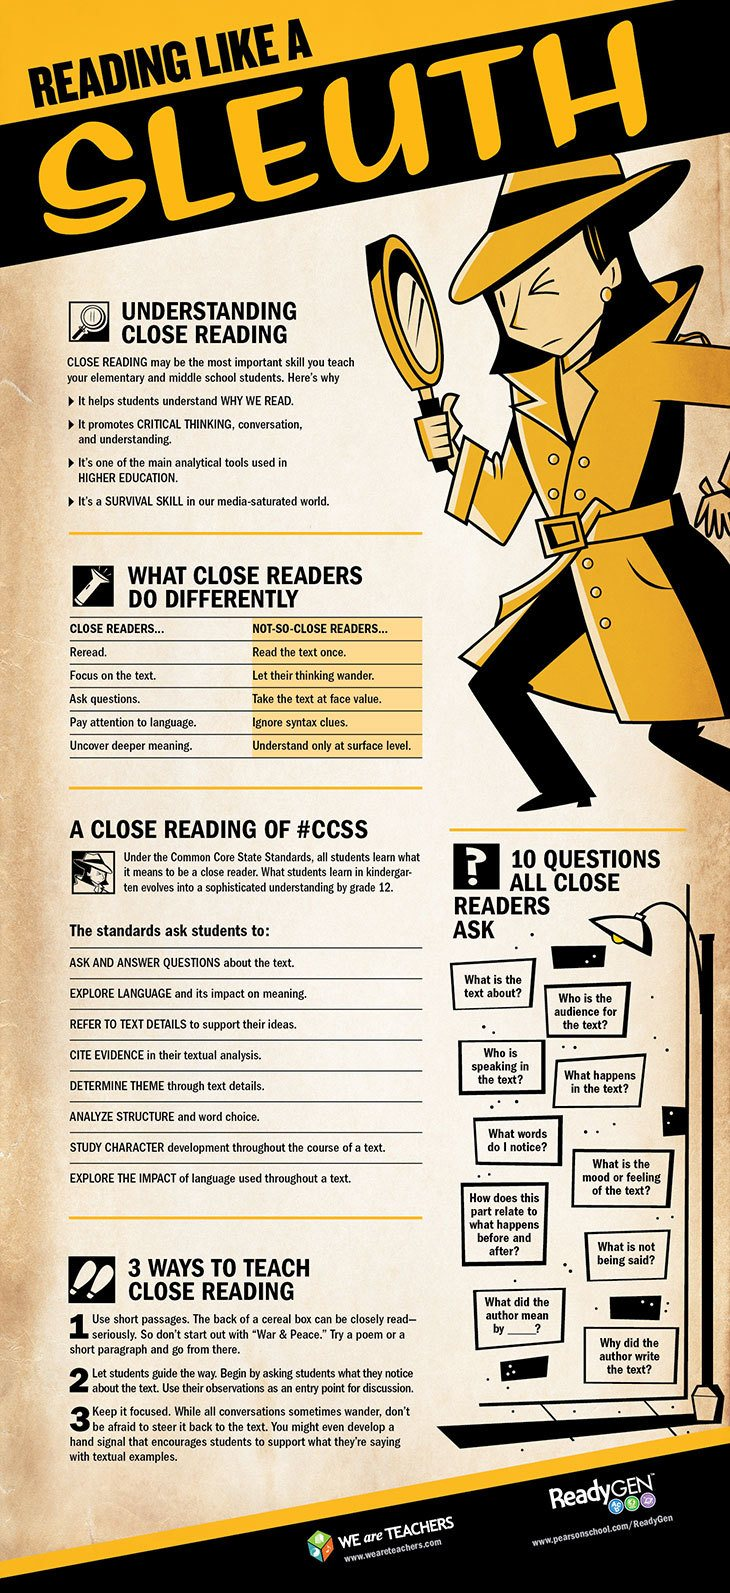 How-to-Teach-Close-Reading-Infographic